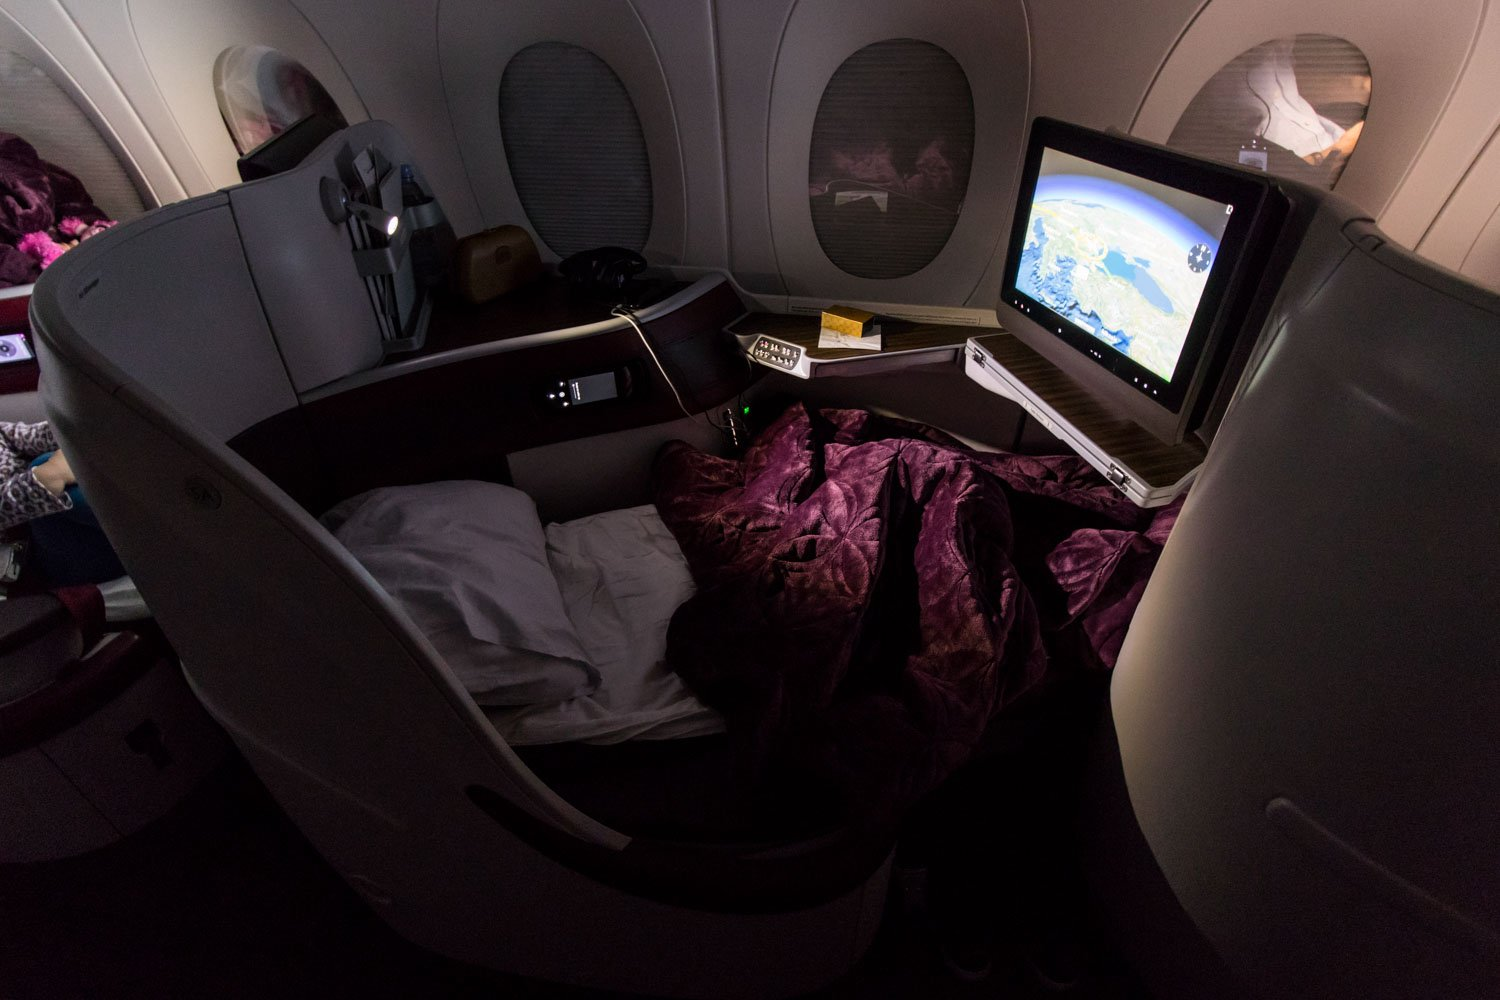 Qatar Airways Airbus A350-900 Business Class Full Flat Seat